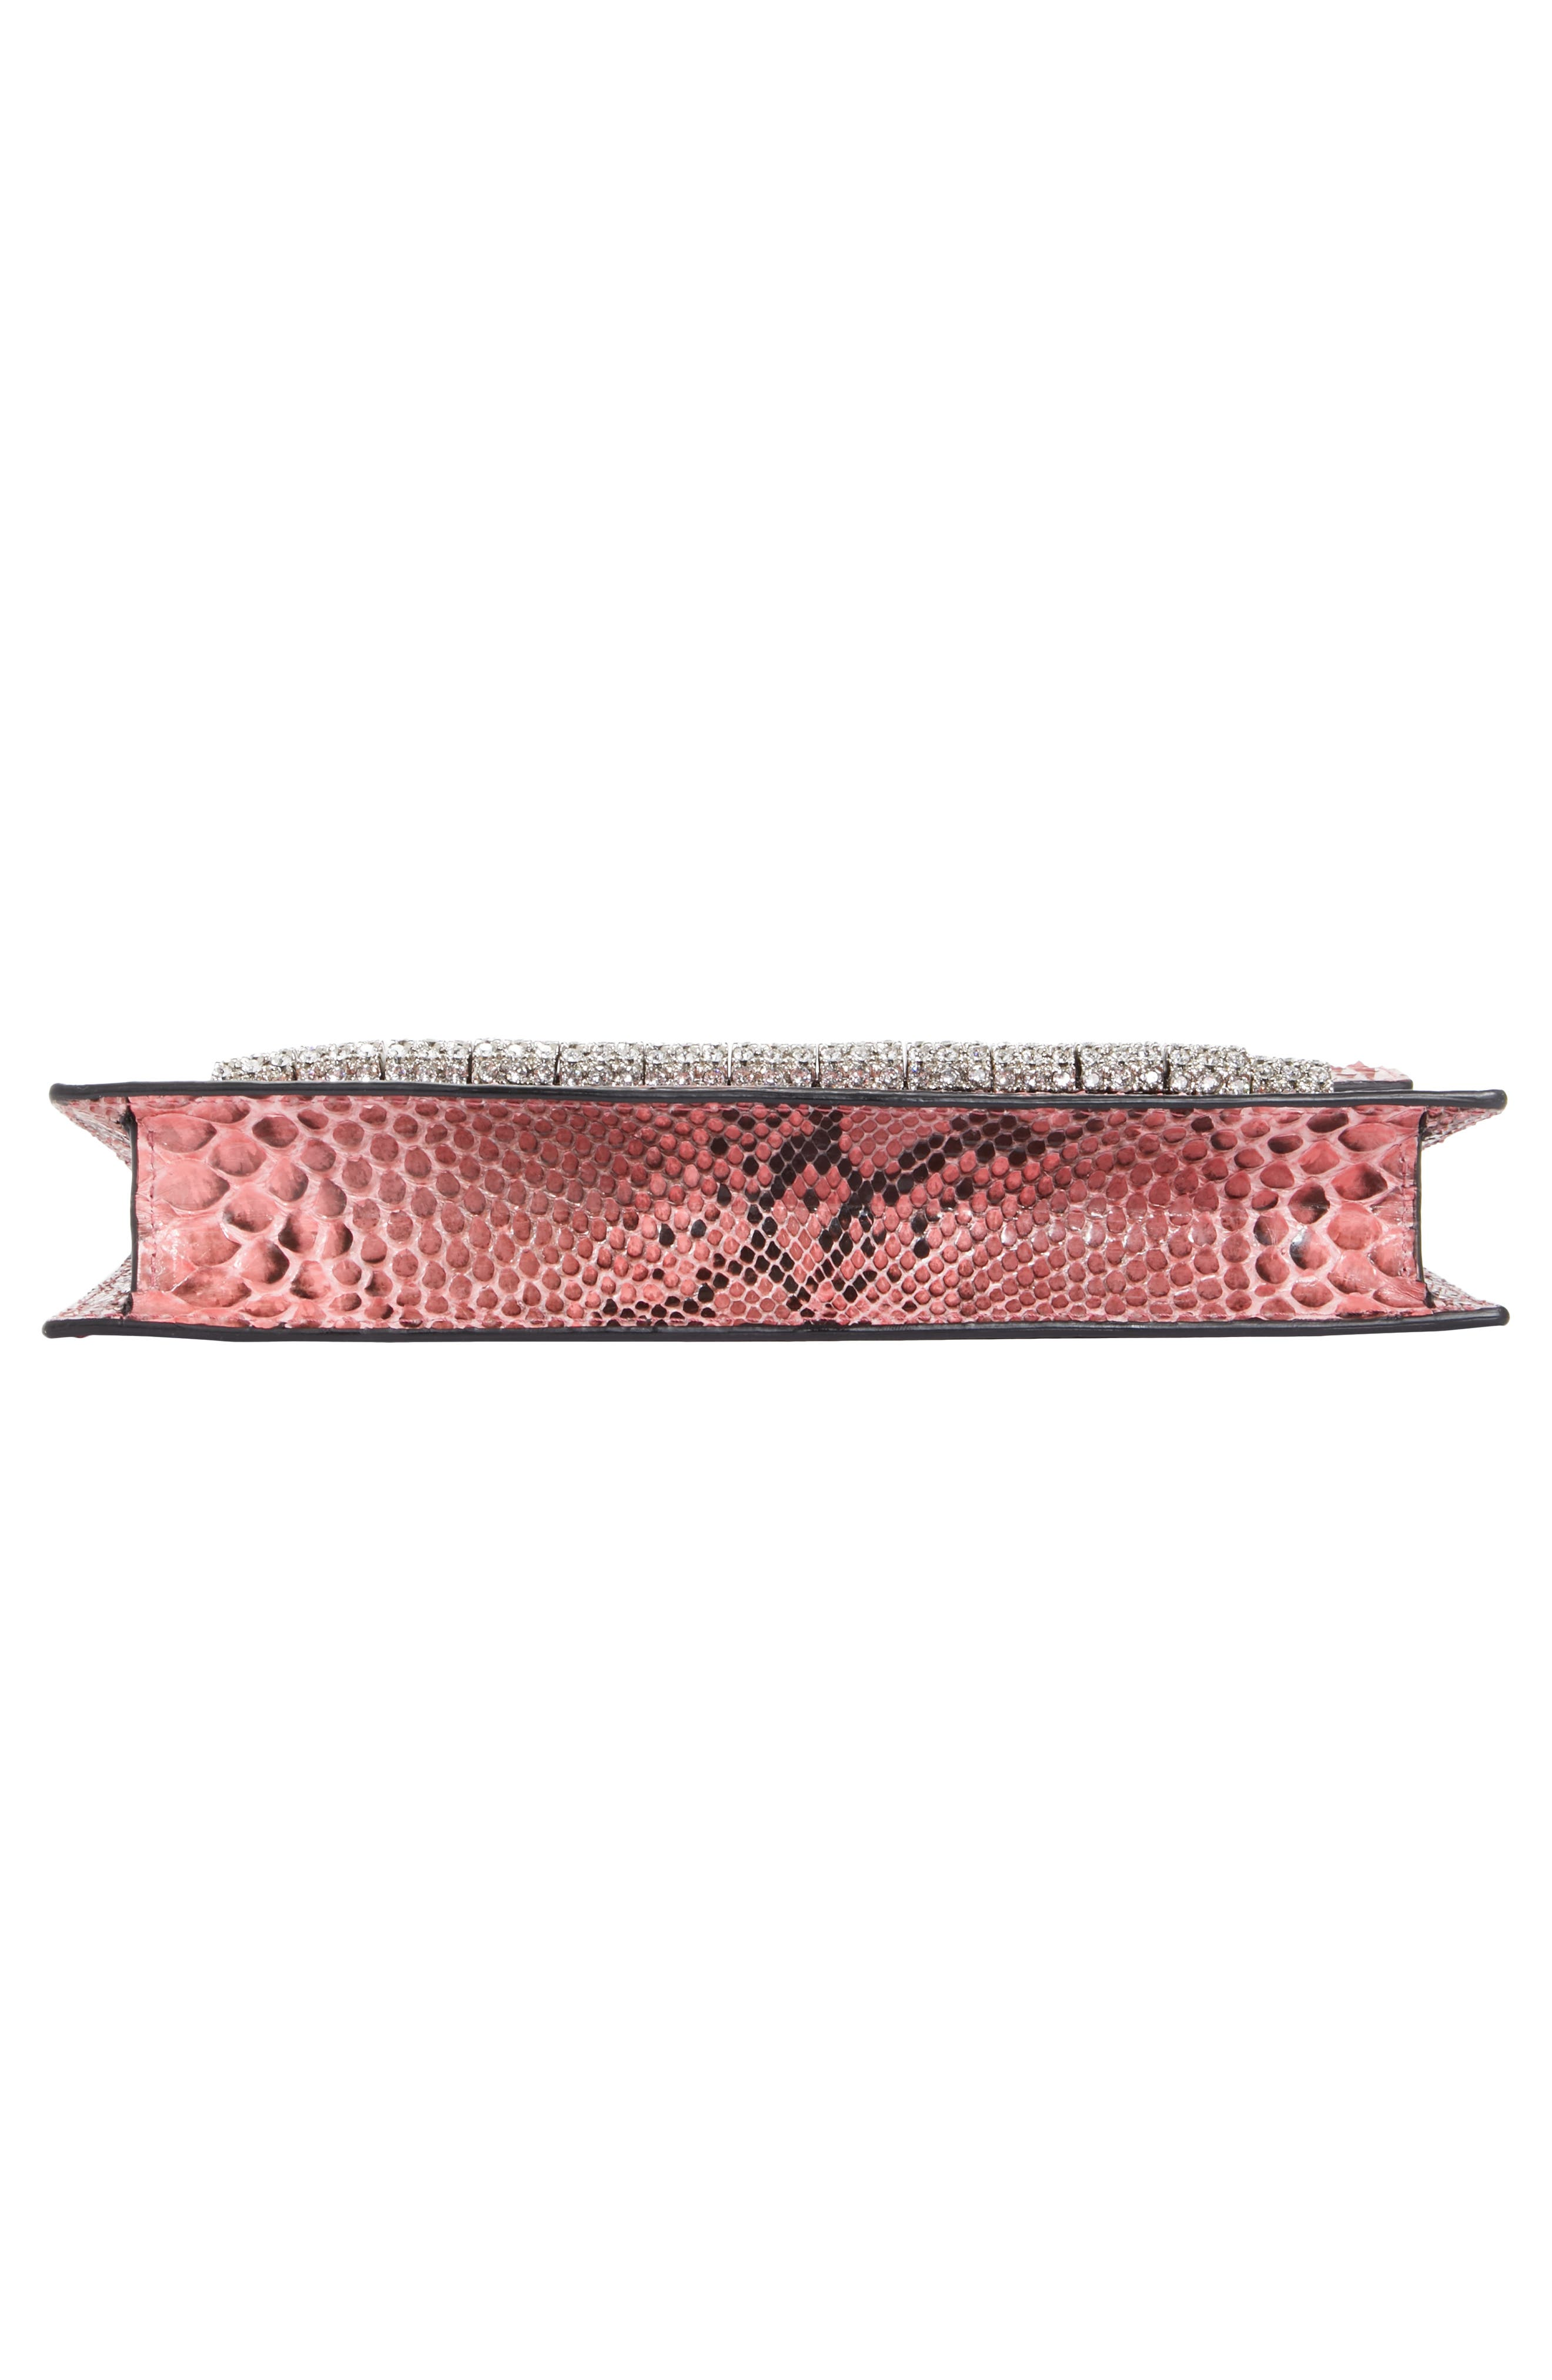 Crystal Strap Genuine Python Clutch,                             Alternate thumbnail 6, color,                             686